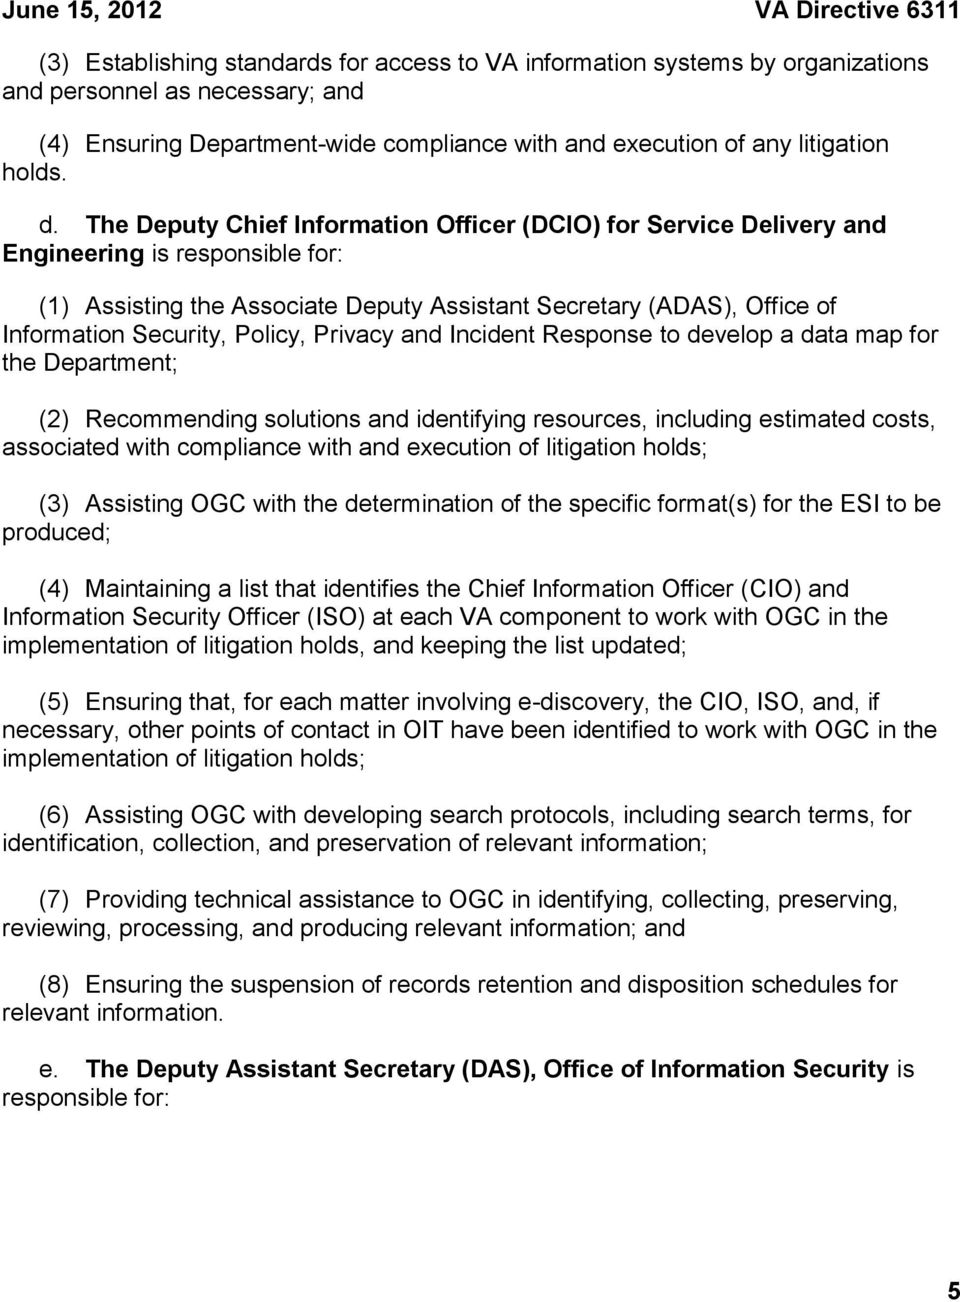 The Deputy Chief Information Officer (DCIO) for Service Delivery and Engineering is responsible for: (1) Assisting the Associate Deputy Assistant Secretary (ADAS), Office of Information Security,